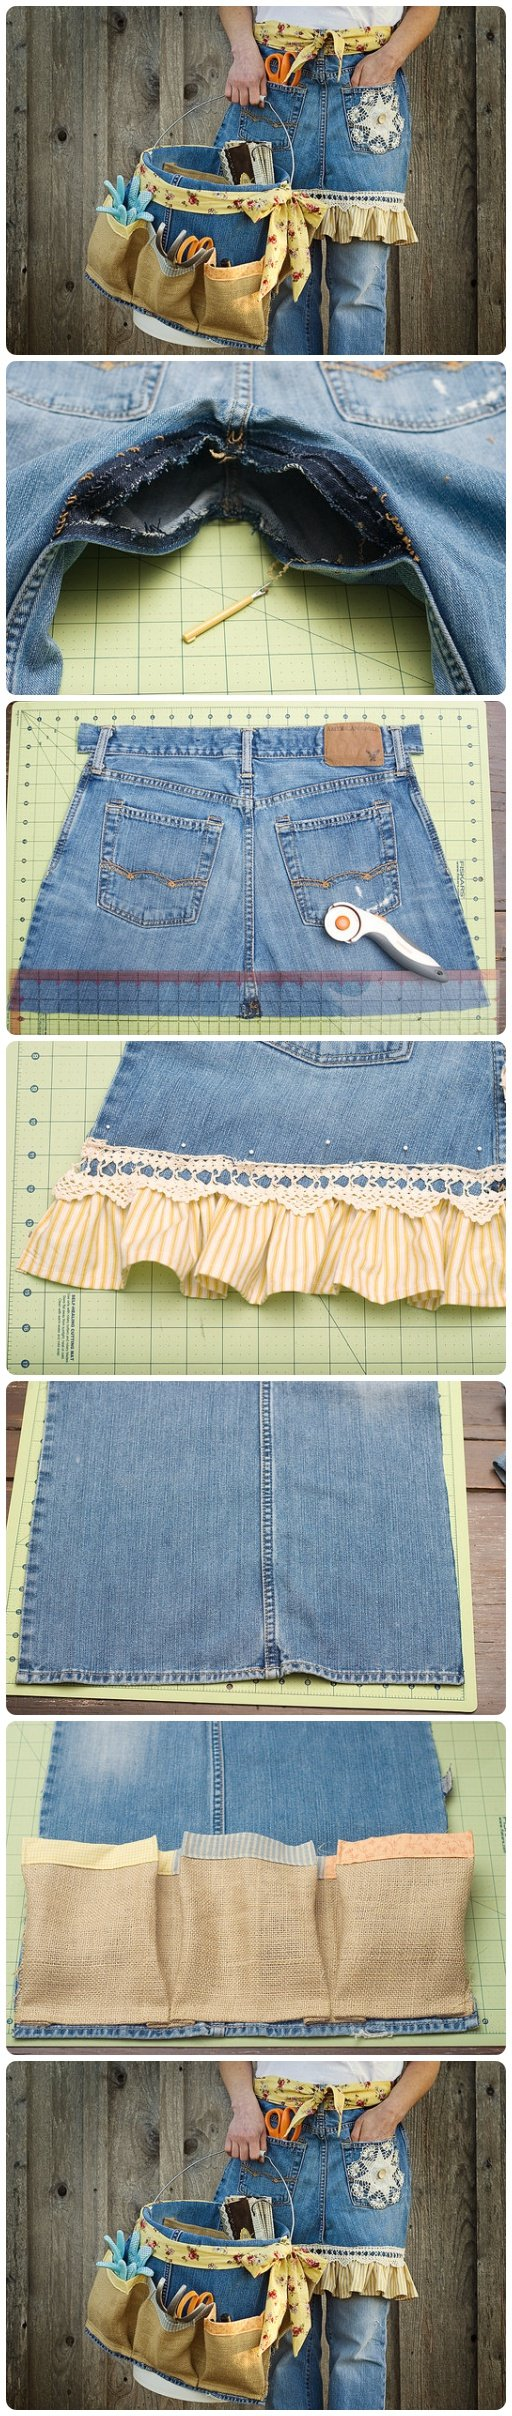 how to make an apron out of jeans